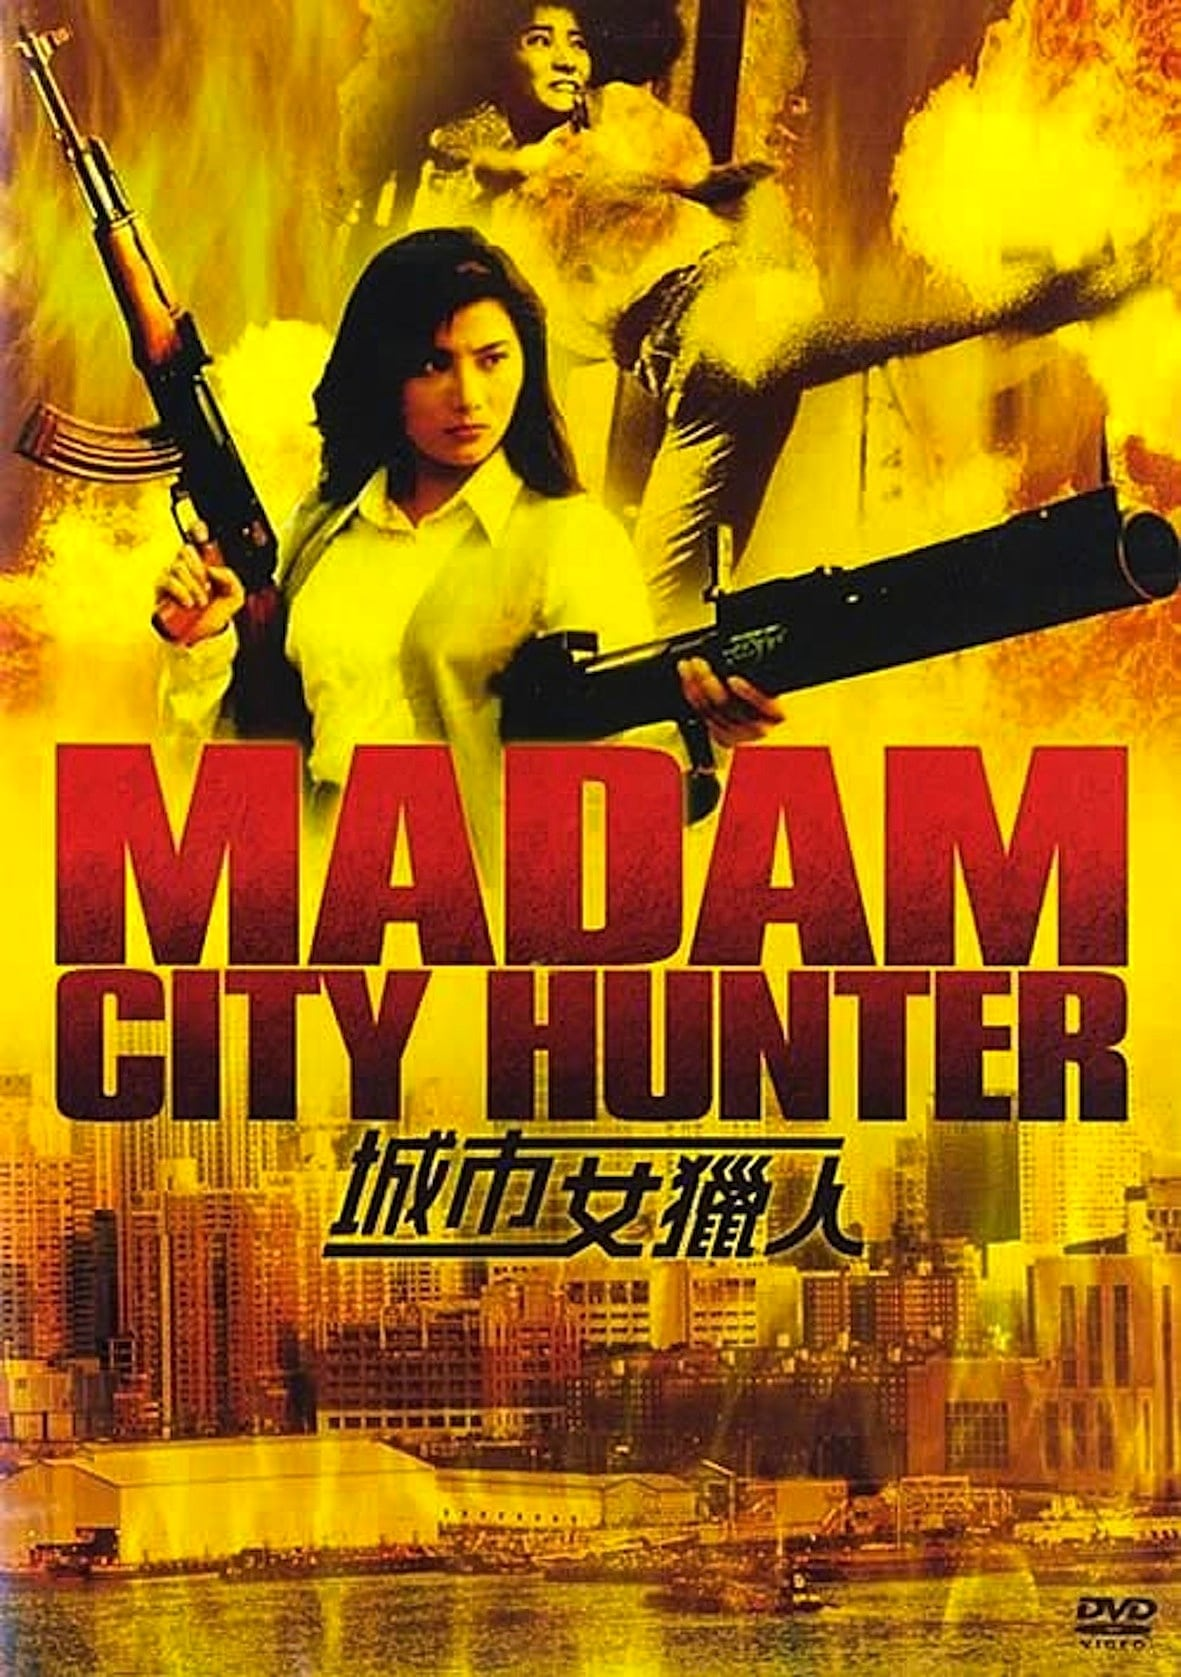 Madam City Hunter (1993)